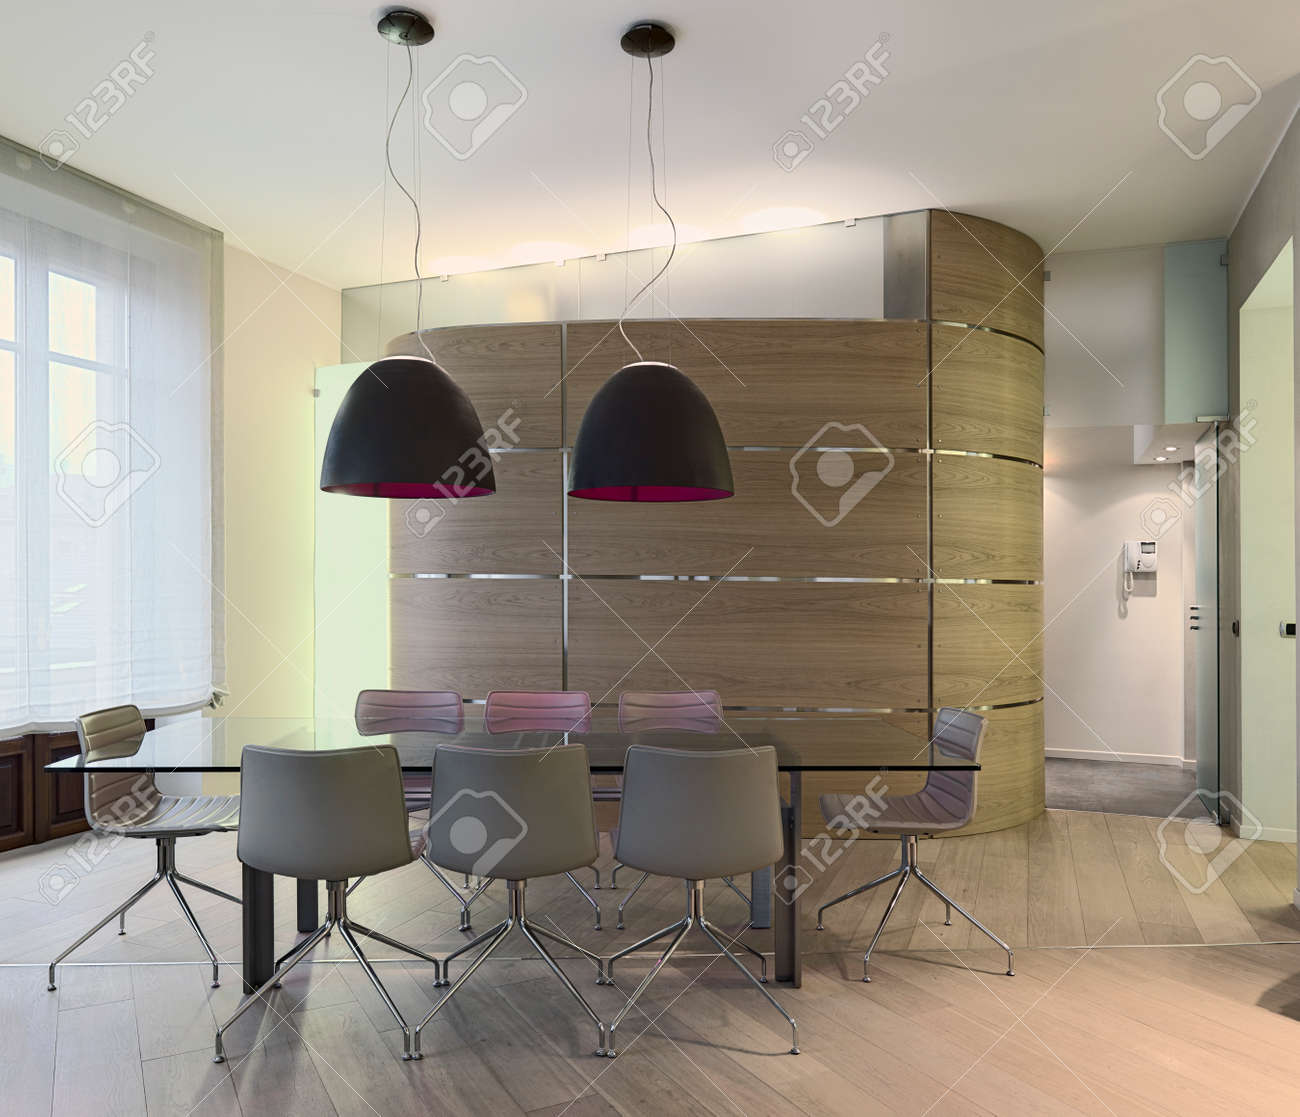 Glass Dining Table In A Modern Apartment With Boiserie And Wood ...